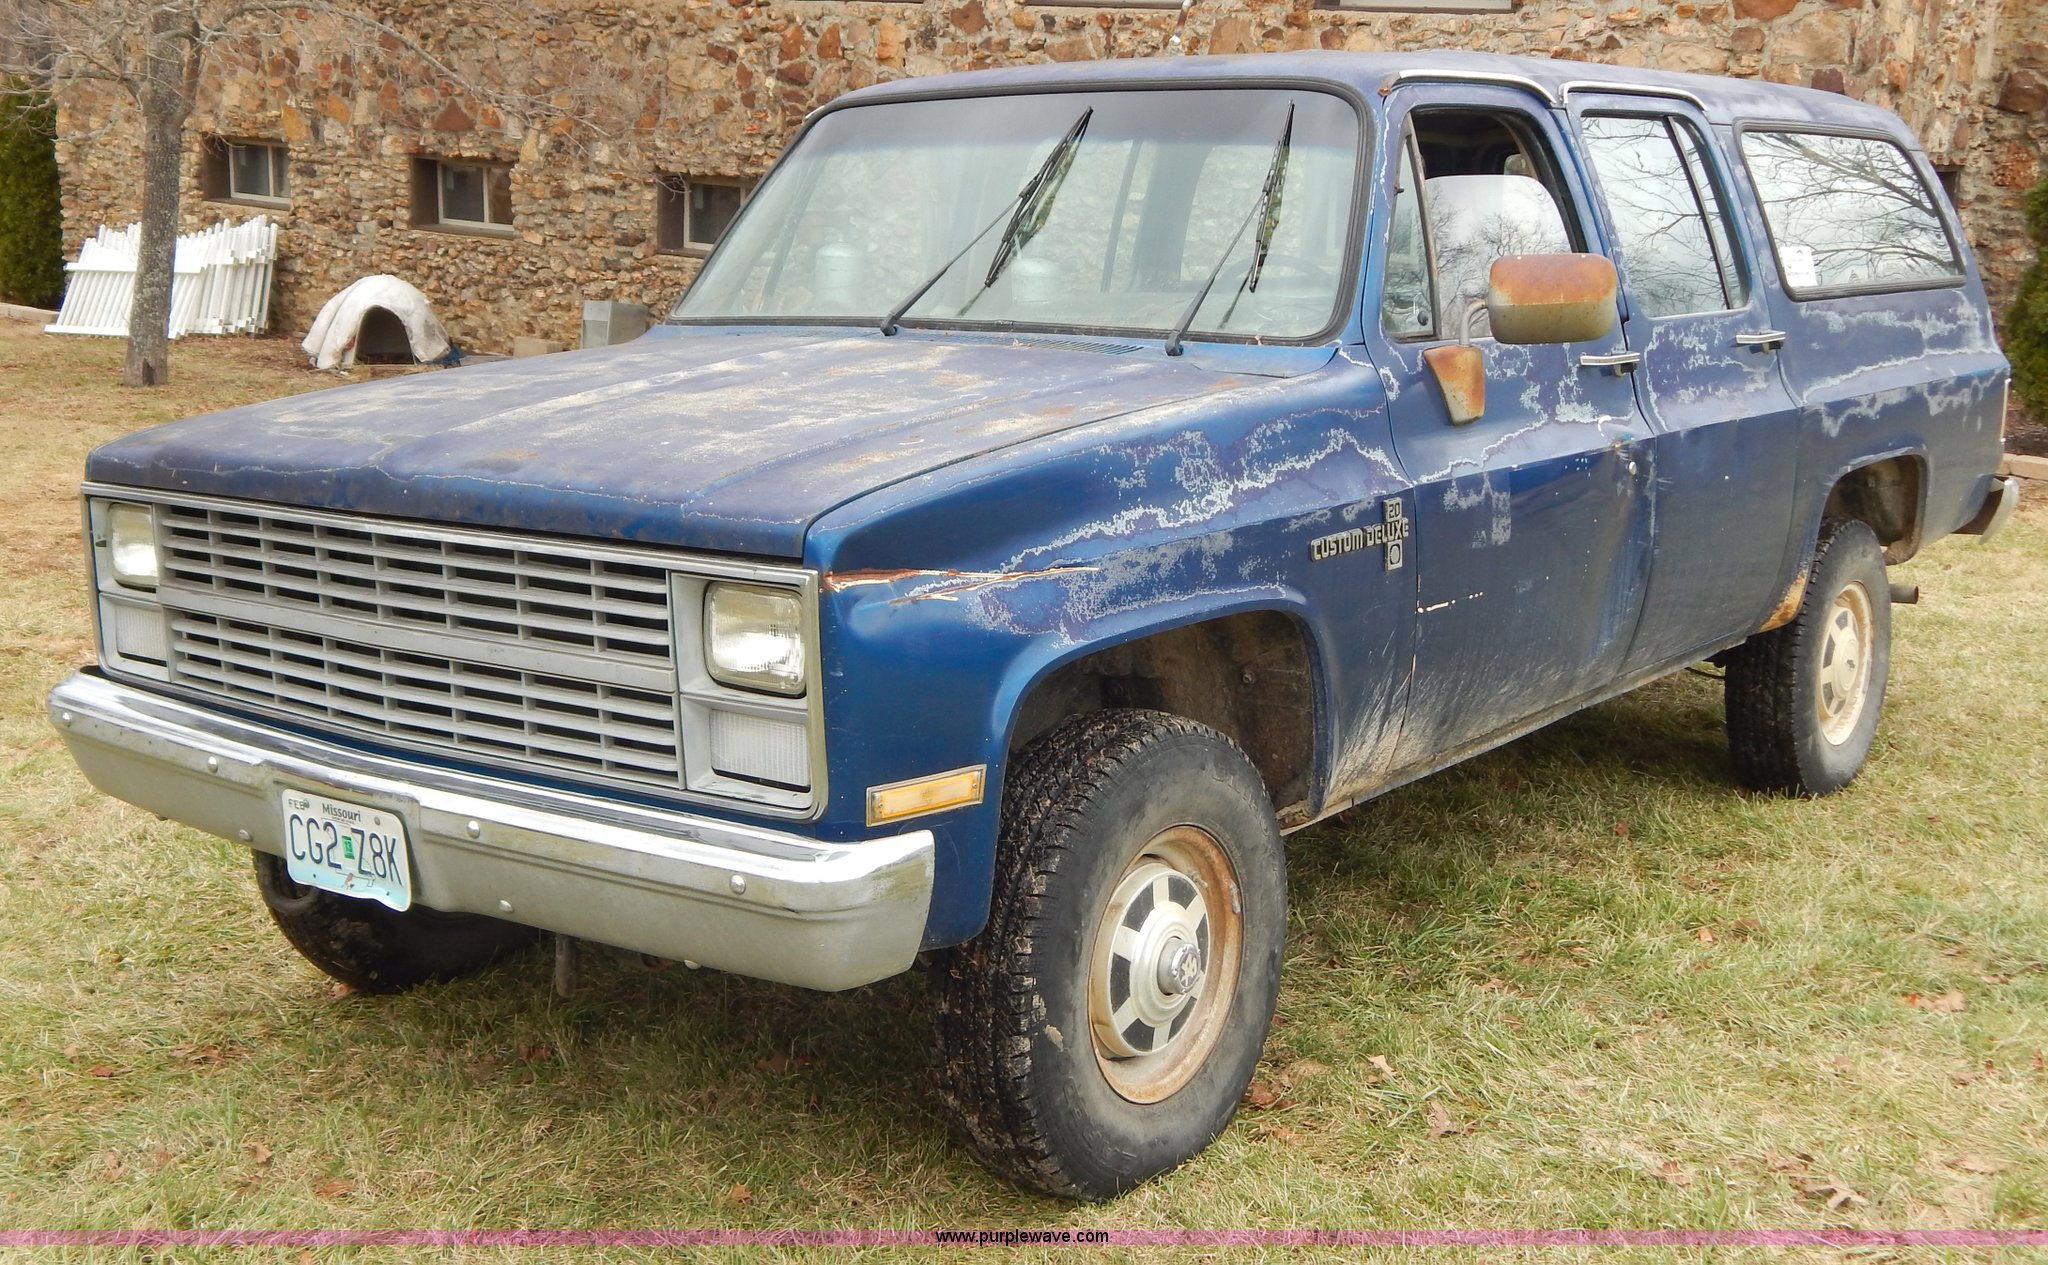 1983 Chevrolet K20 Custom Deluxe Silverado Suburban SUV | It